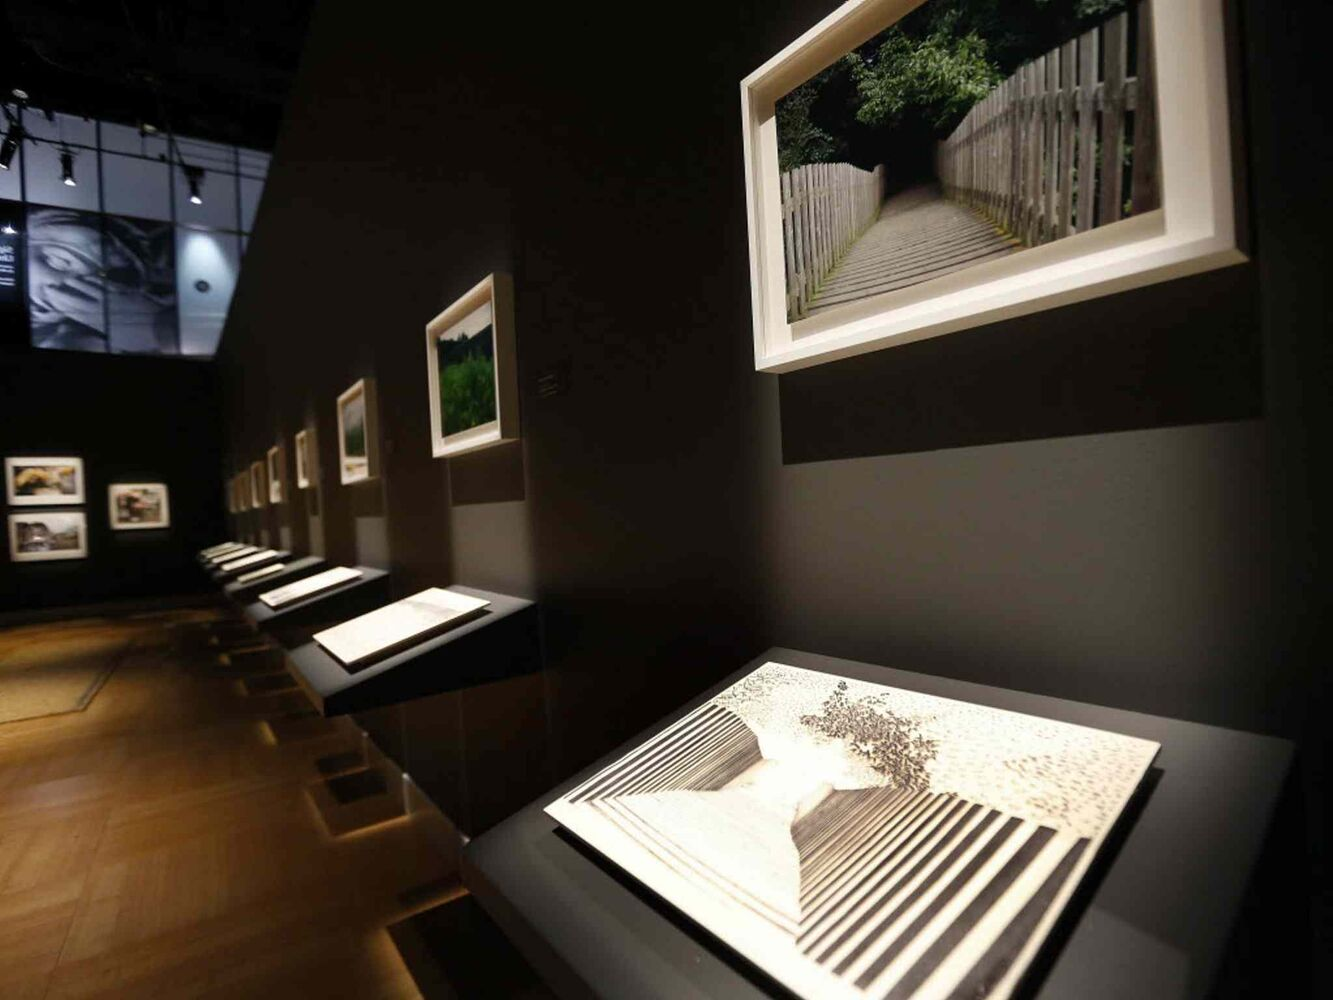 Rosita McKenzie photographs and Camilla Adams raised ink illustrations are on display at the Canadian Museum for Human Rights as they open a new exhibition, Sight Unseen: International Photography by Blind Artists. (JOHN WOODS / The Canadian Press)